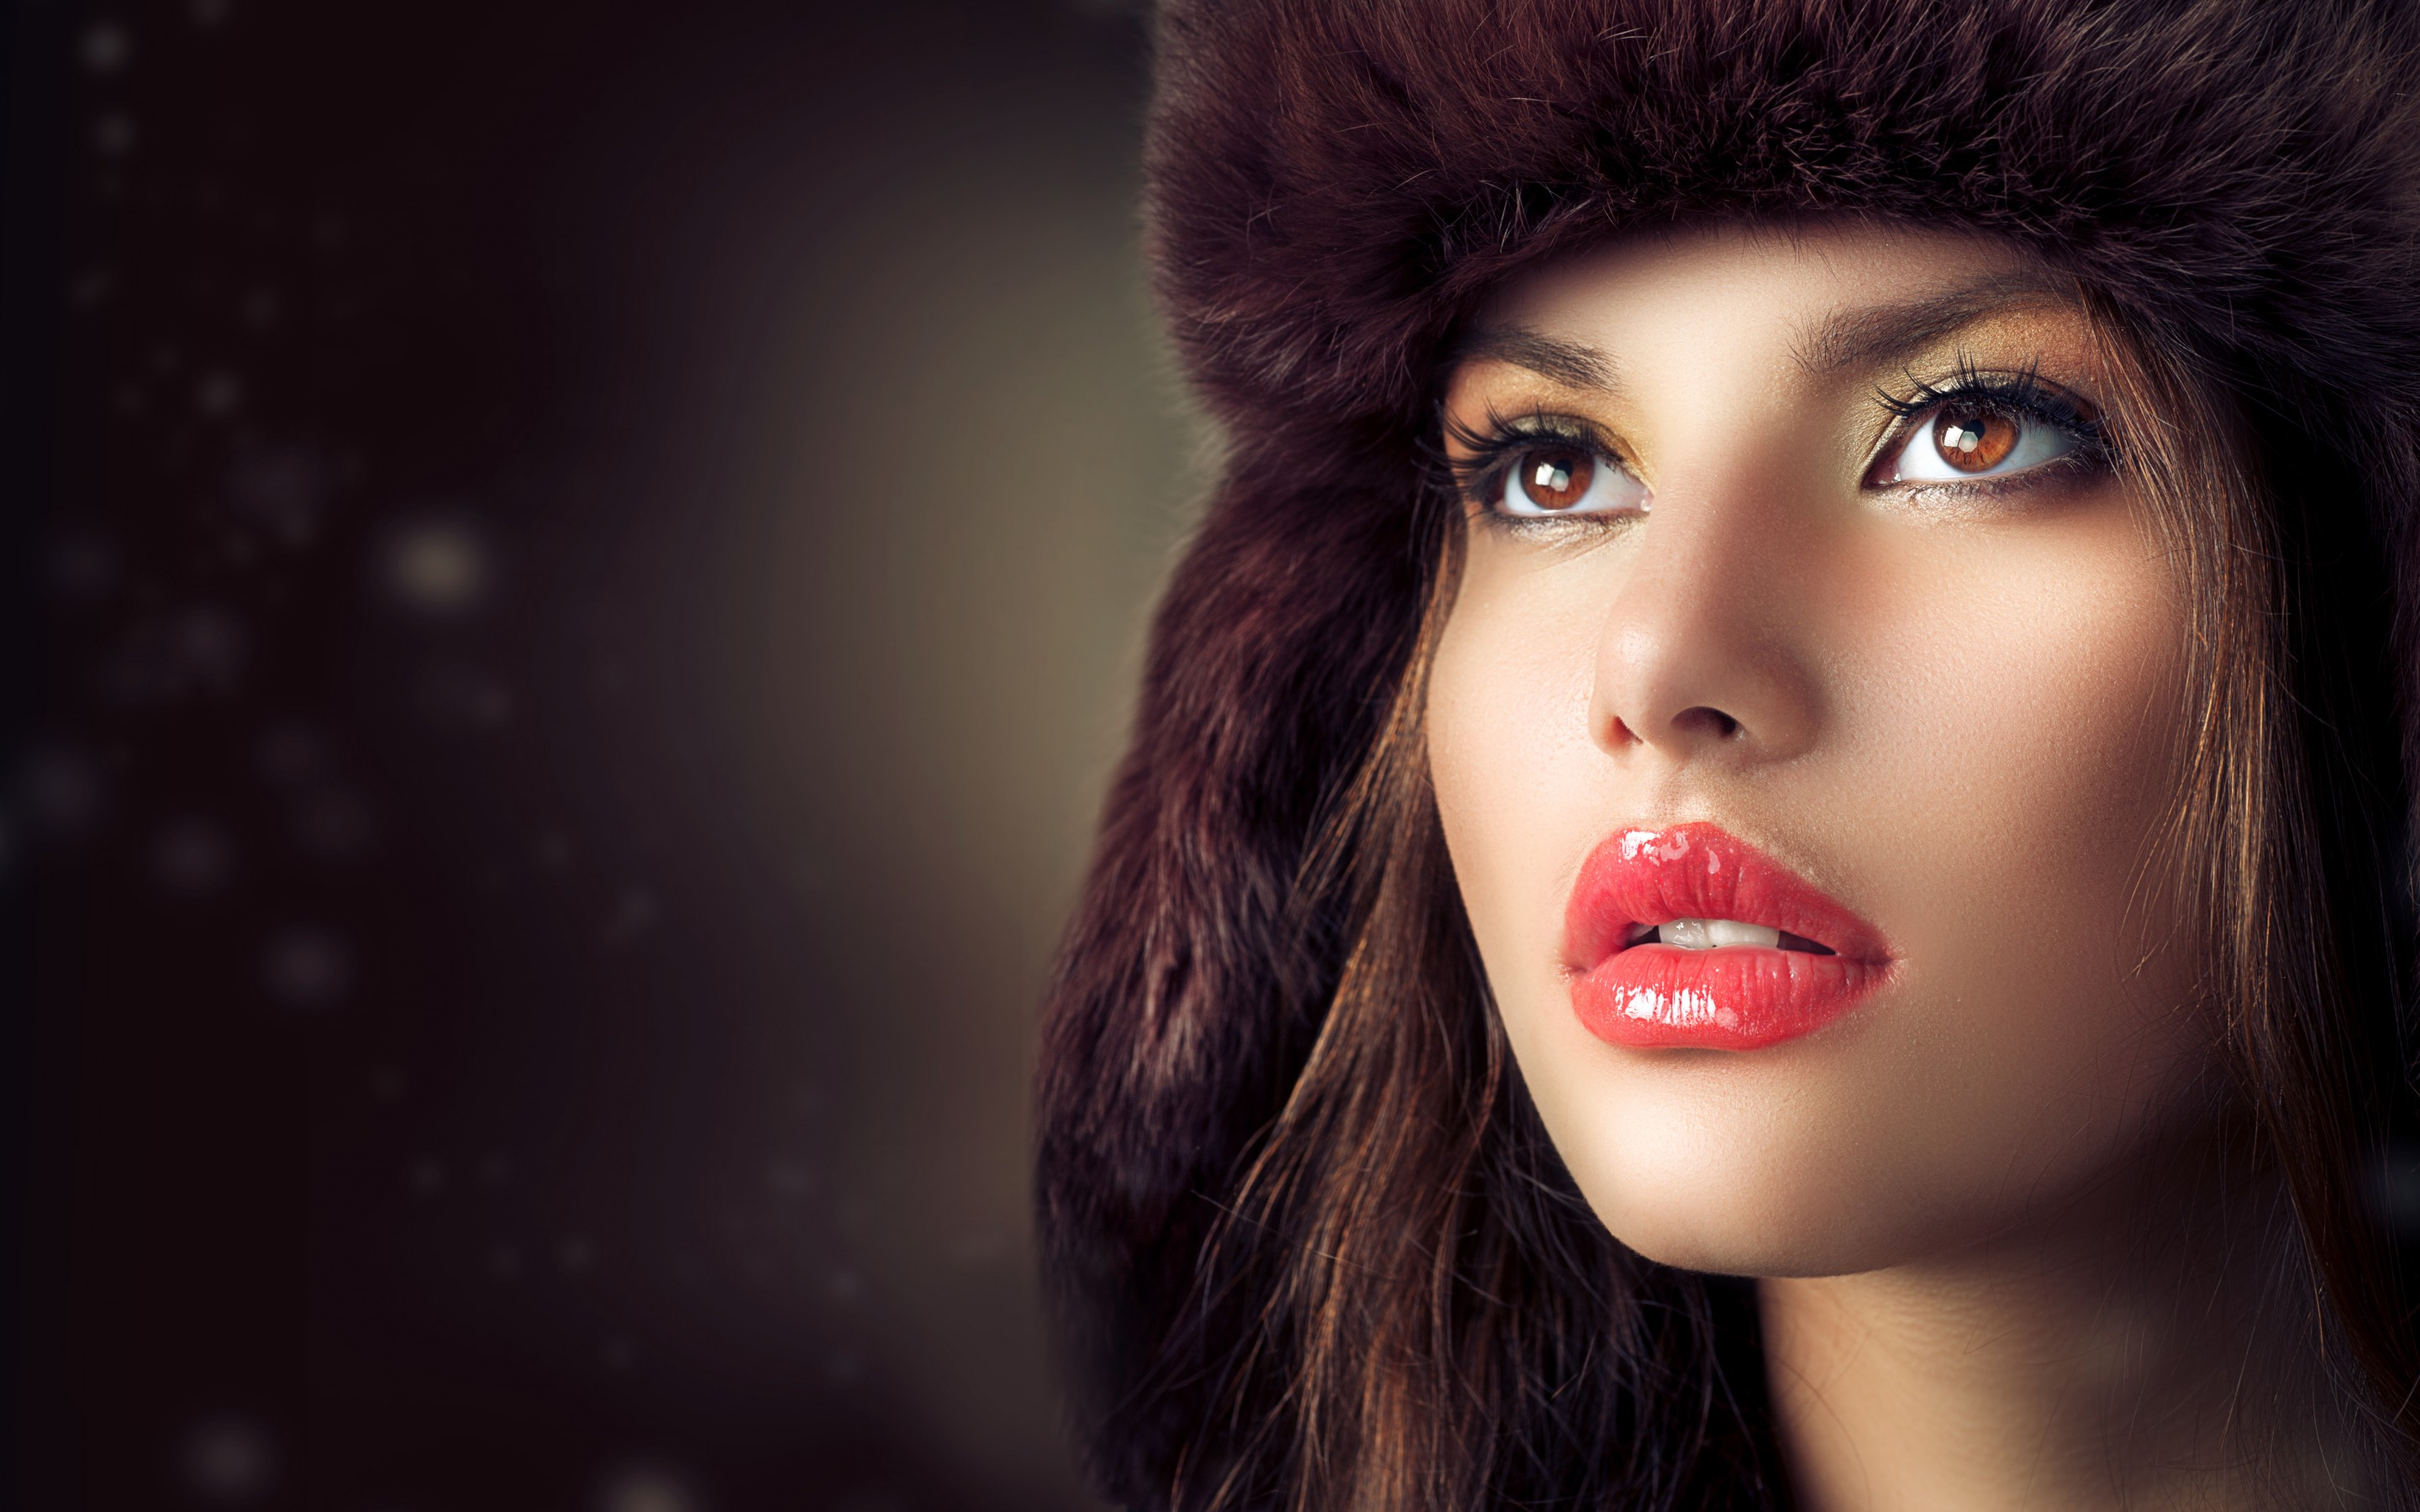 Beauty Fashion Model Girl With Hat HD Wallpaper 2880x1800